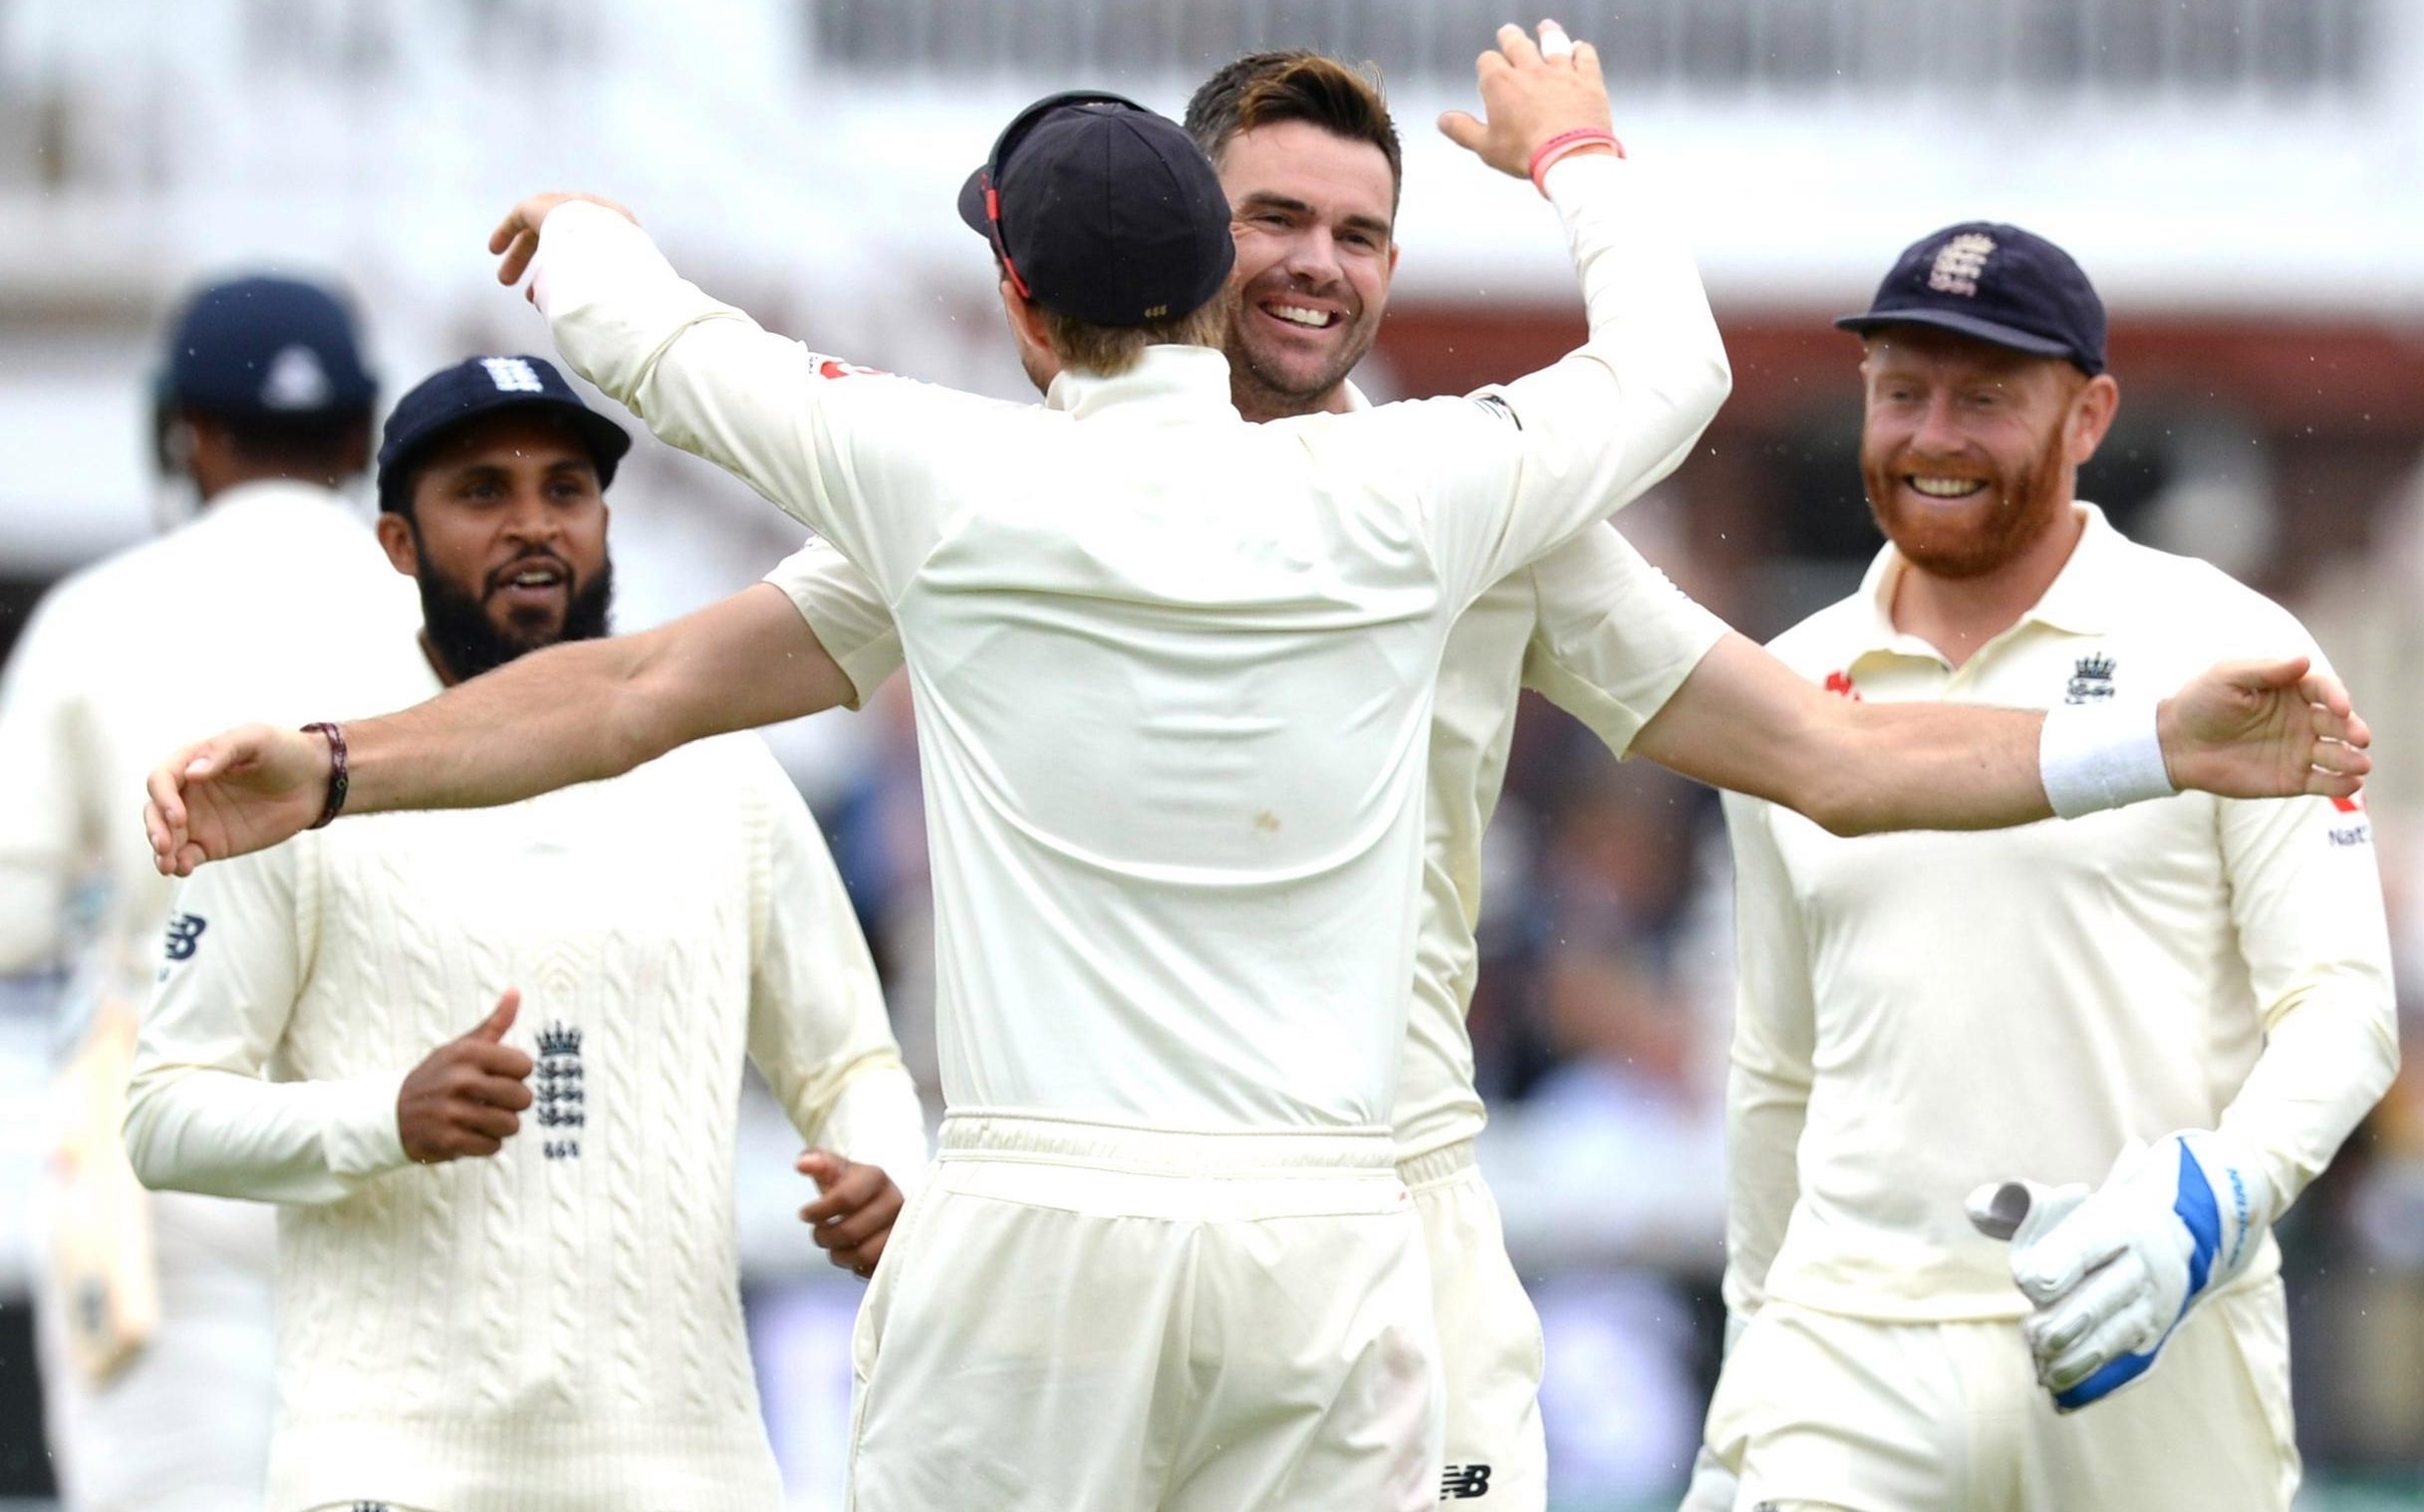 James Anderson was again outstanding as he shares England's fourth-day victory joy with skipper Joe Root, putting the hosts 2-0 up in the five-Test series